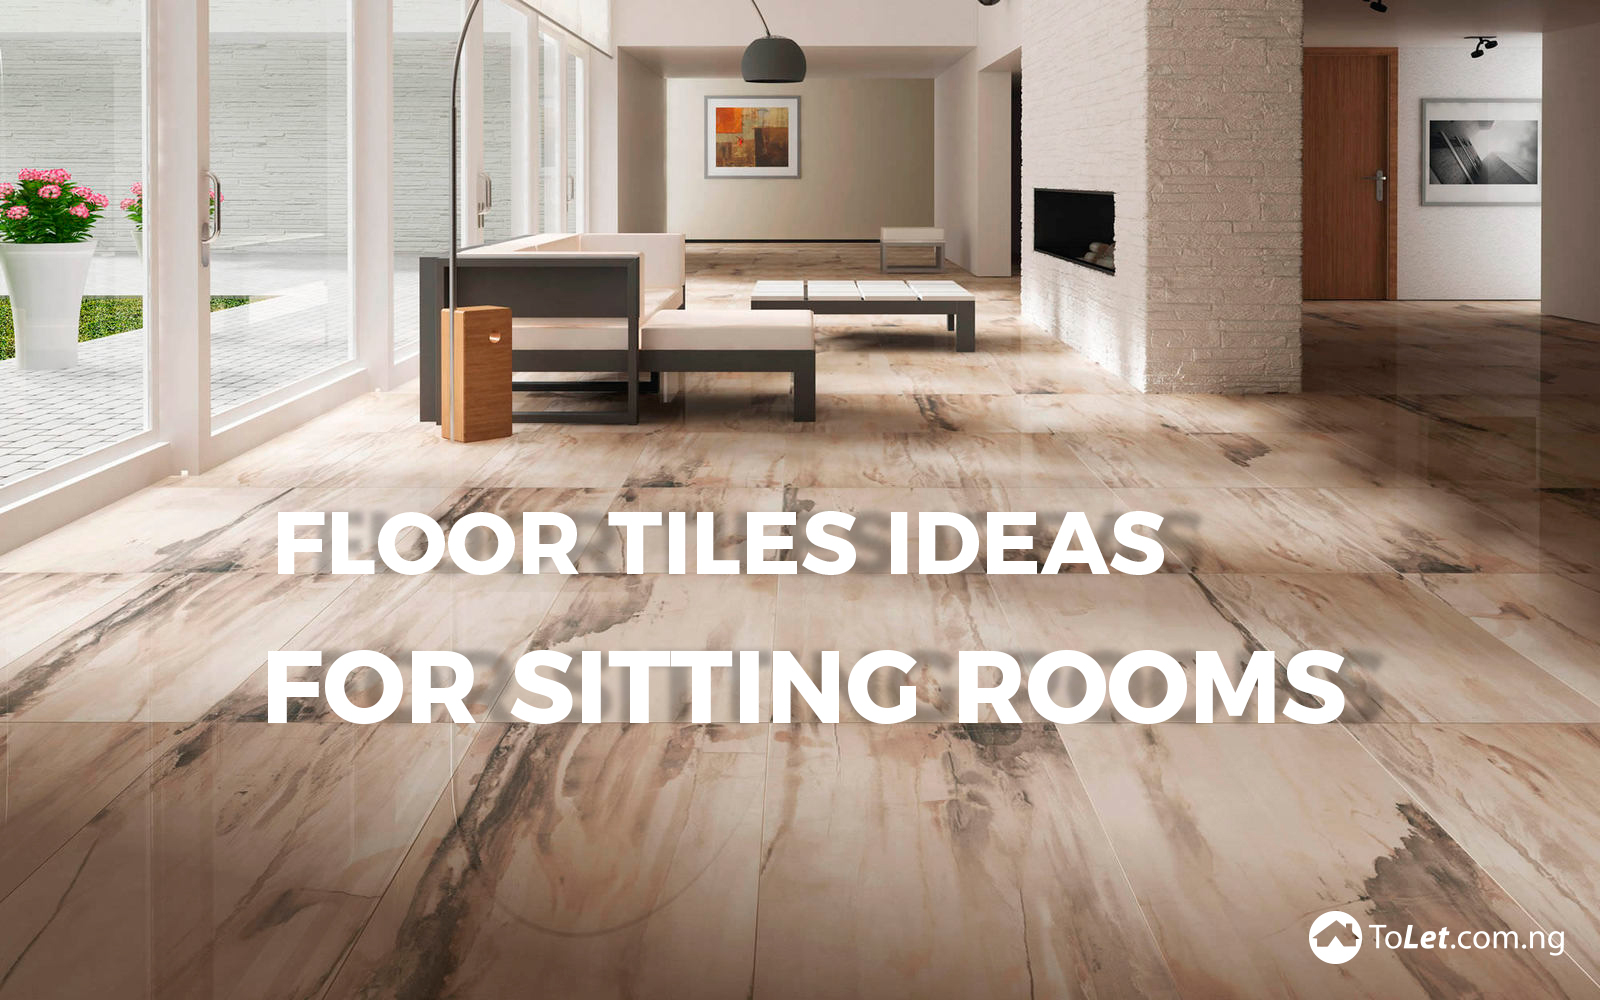 Related posts floor tiles ideas for sitting rooms